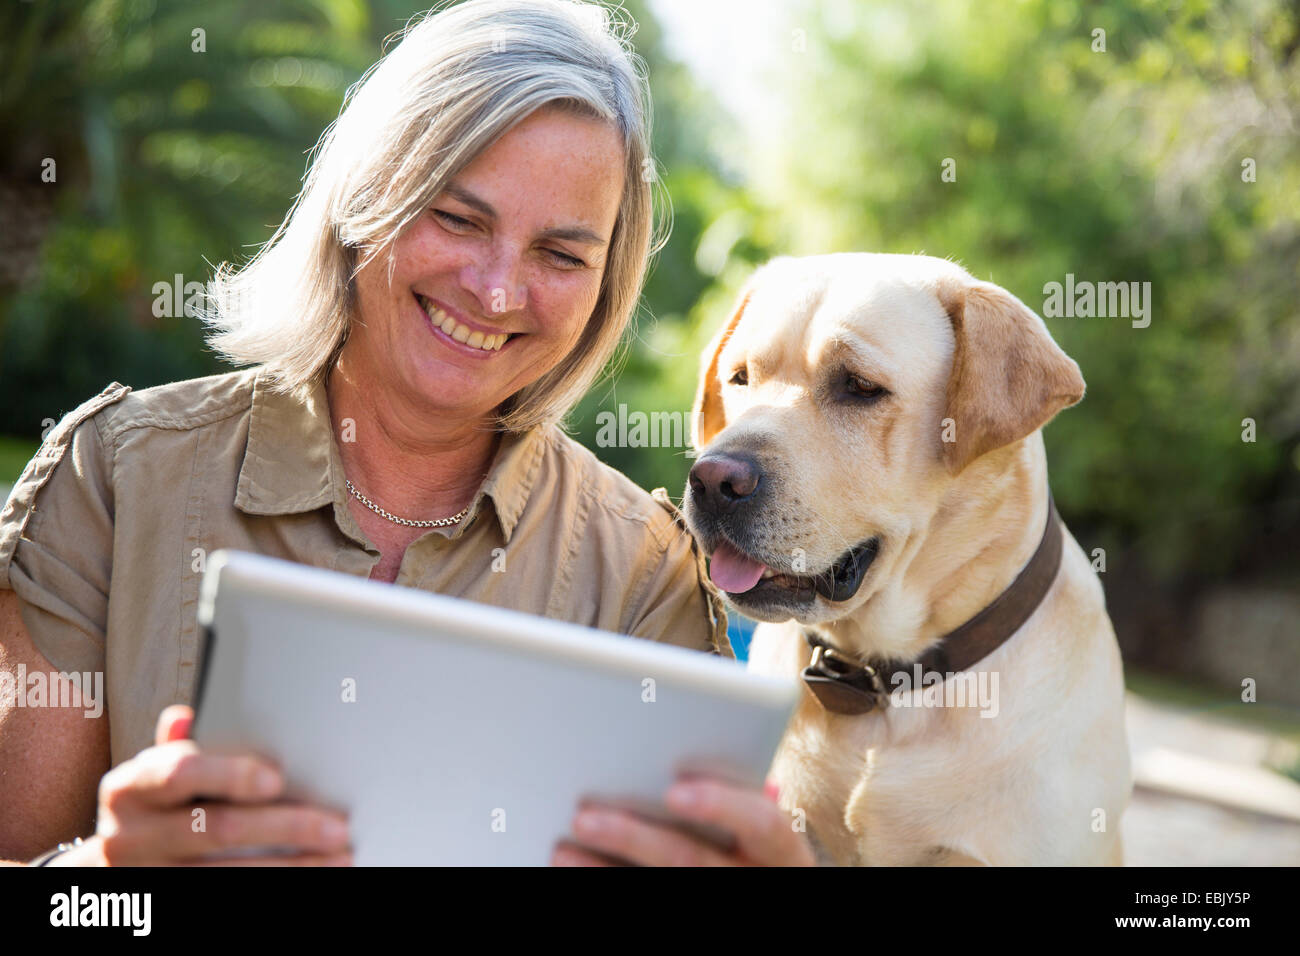 Woman and dog looking at digital tablet - Stock Image